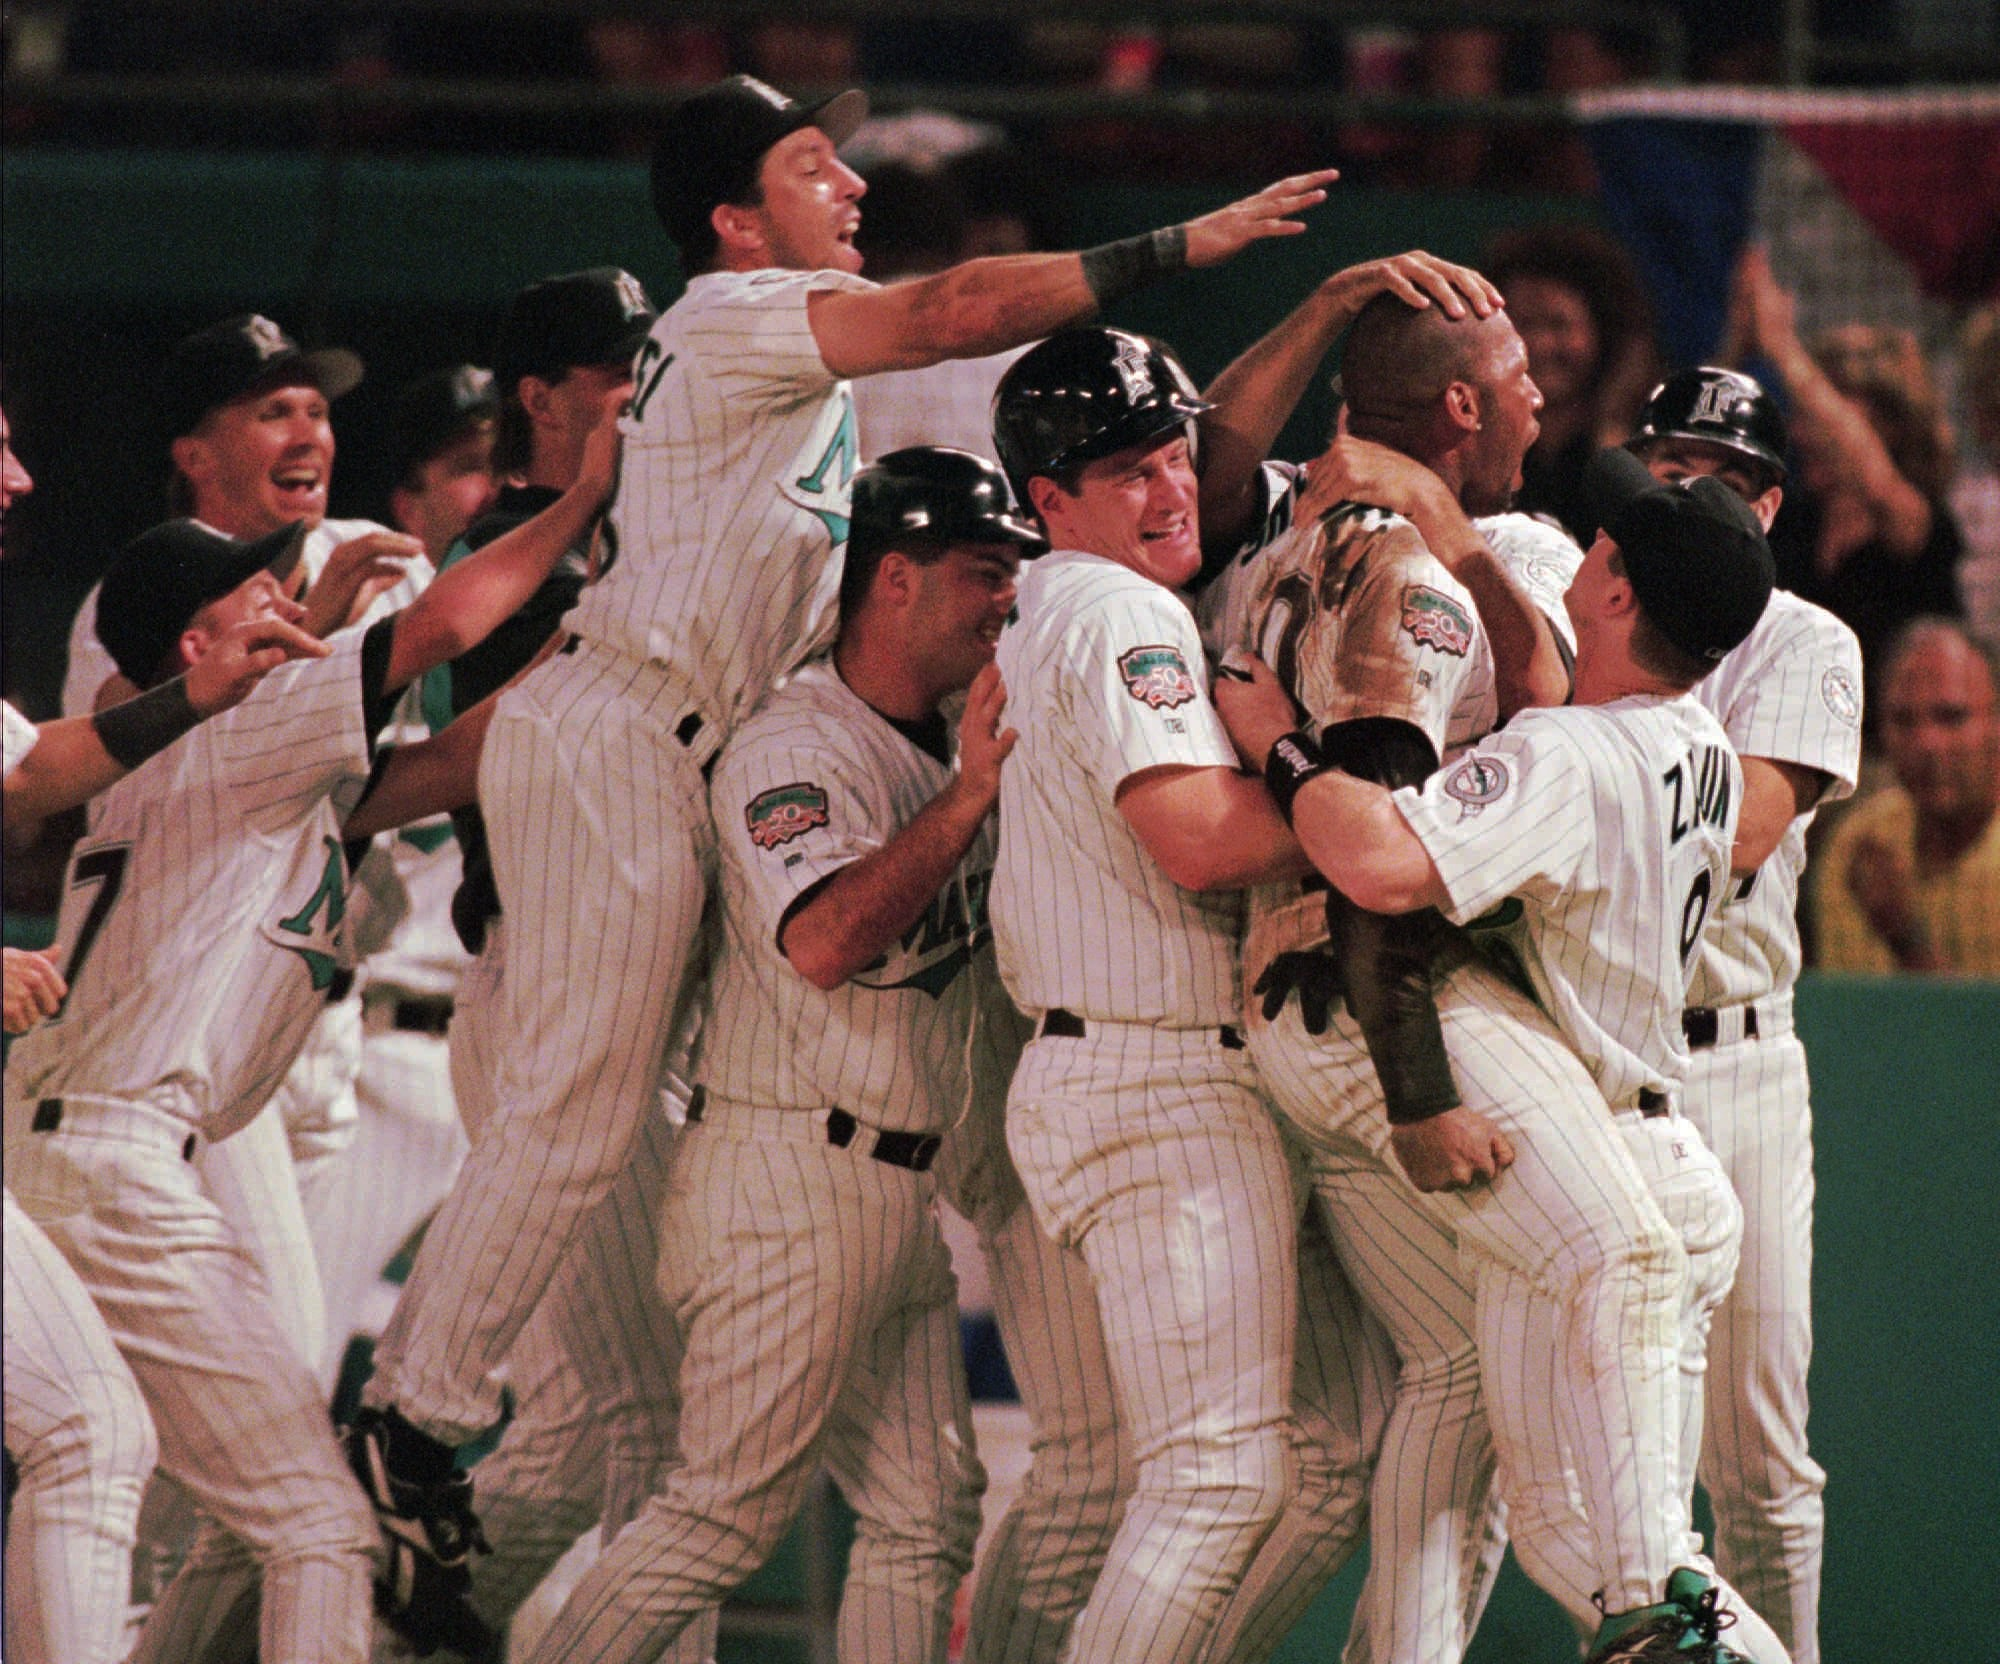 Florida Marlins teammates mob Gary Sheffield, second from right, after he scored the winning run in the bottom of the ninth inning to beat the San Francisco Giants 7-6 in the second game of their divisional series Wednesday, Oct. 1, 1997, in Miami. (AP Photo/Marta Lavandier)